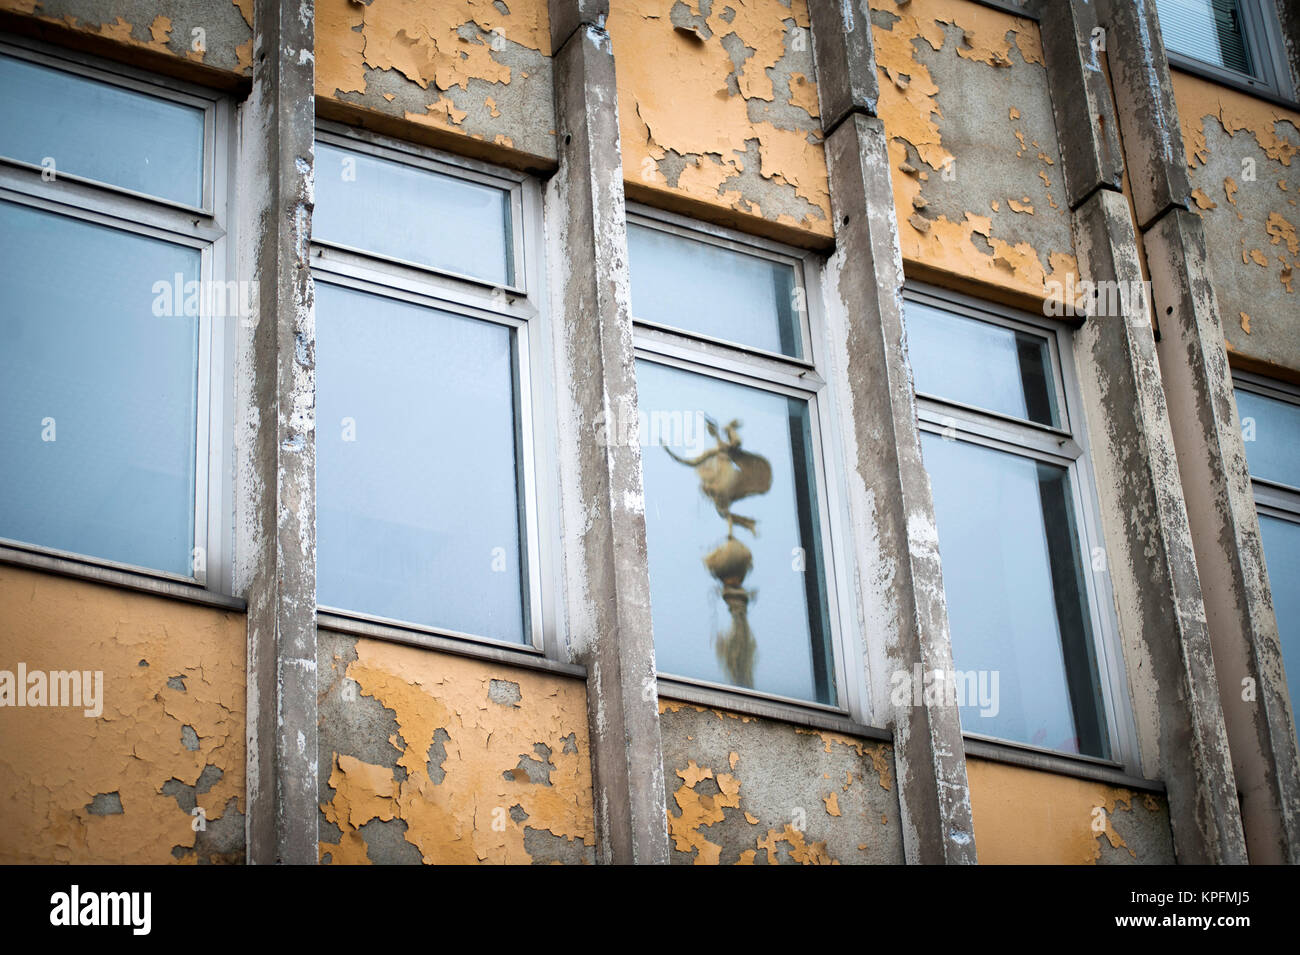 Flats due for demolition at the Am Alter Markt in Potsdam, Germany. - Stock Image